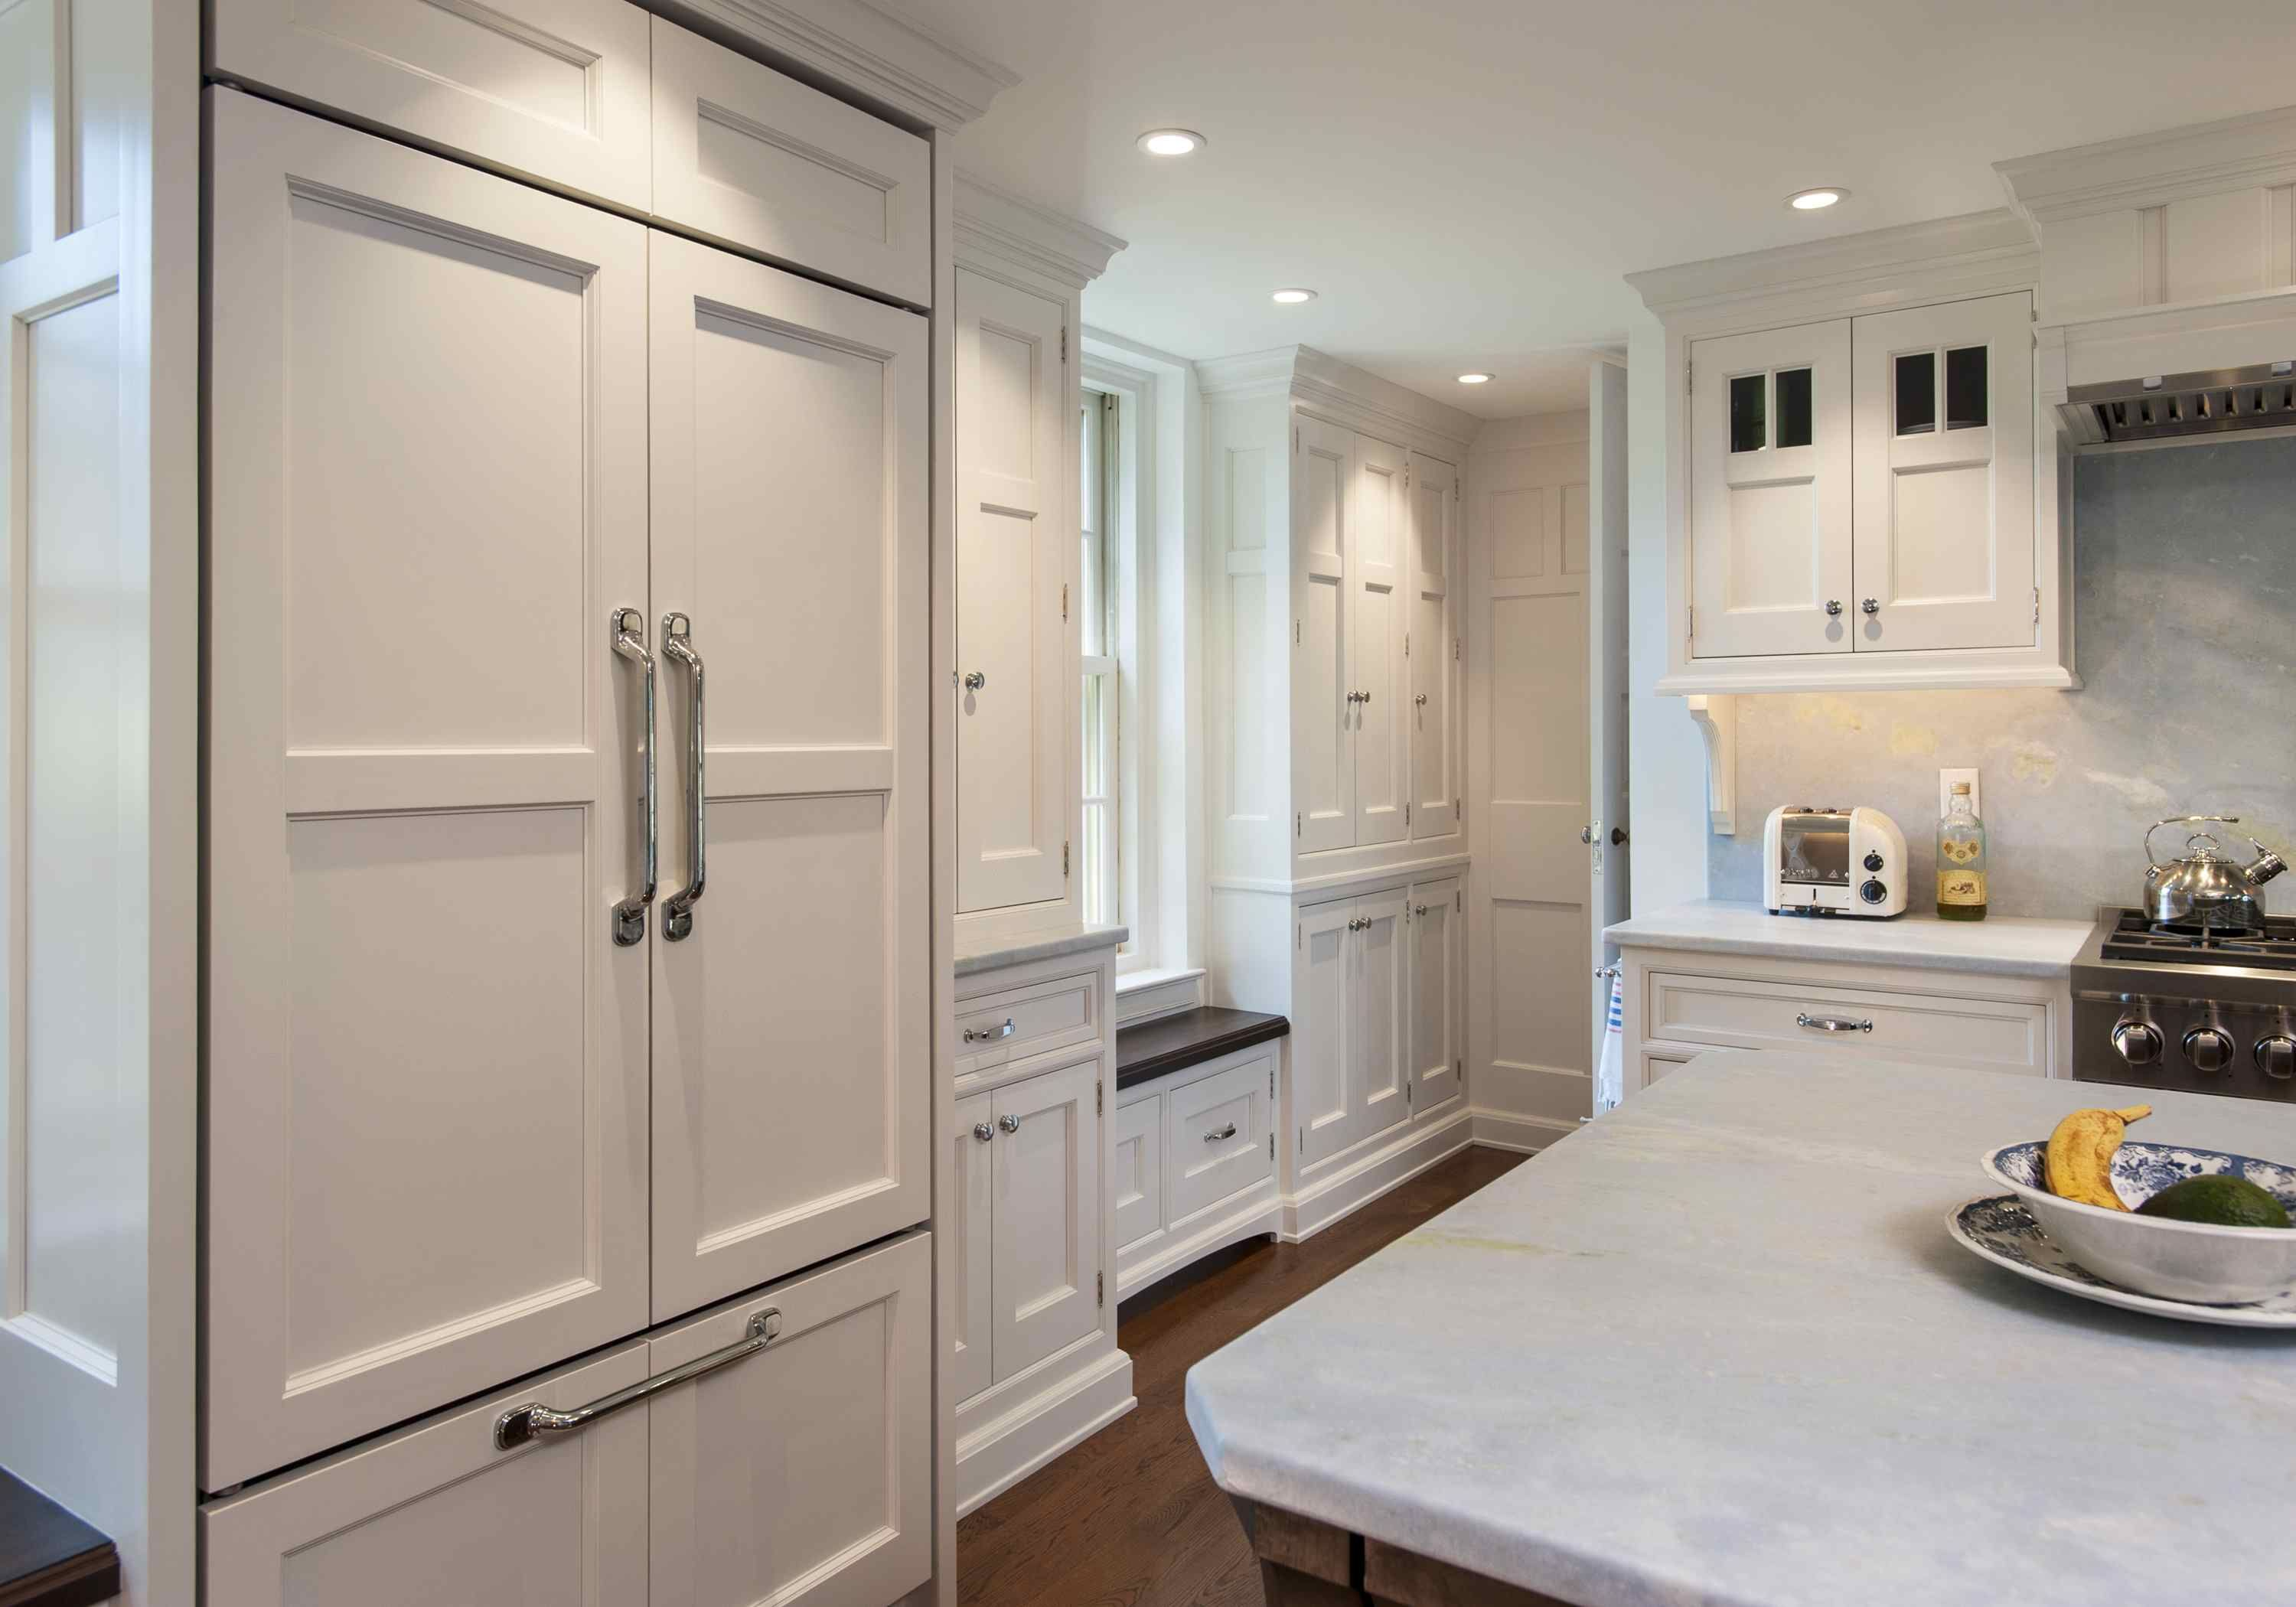 Designed by Main Street Cabinet Co. - The multi-paneled door style ...